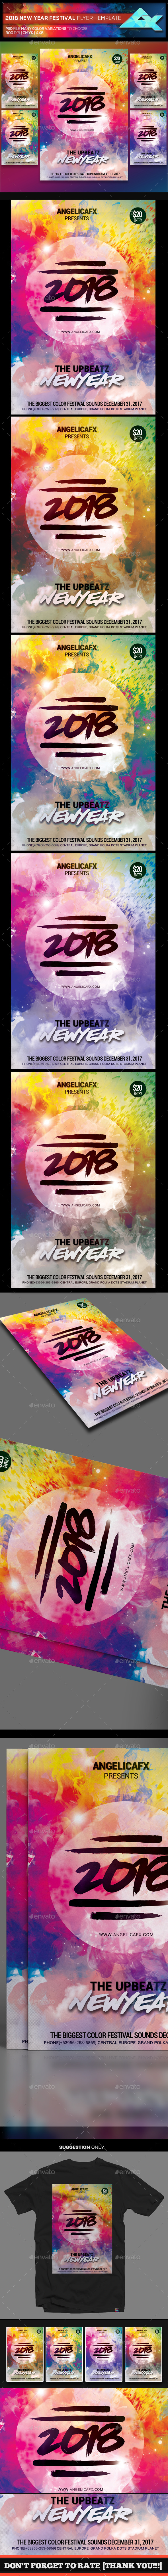 GraphicRiver 2018 New Year Music Festival Flyer Template 21086350